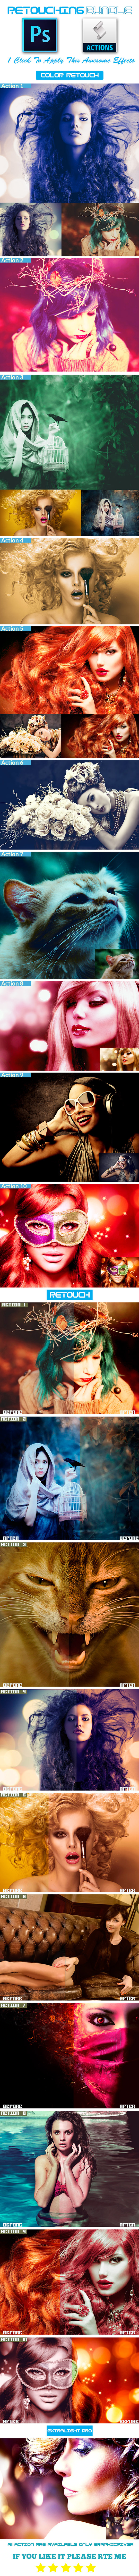 Retouching Action Bundle - Photo Effects Actions